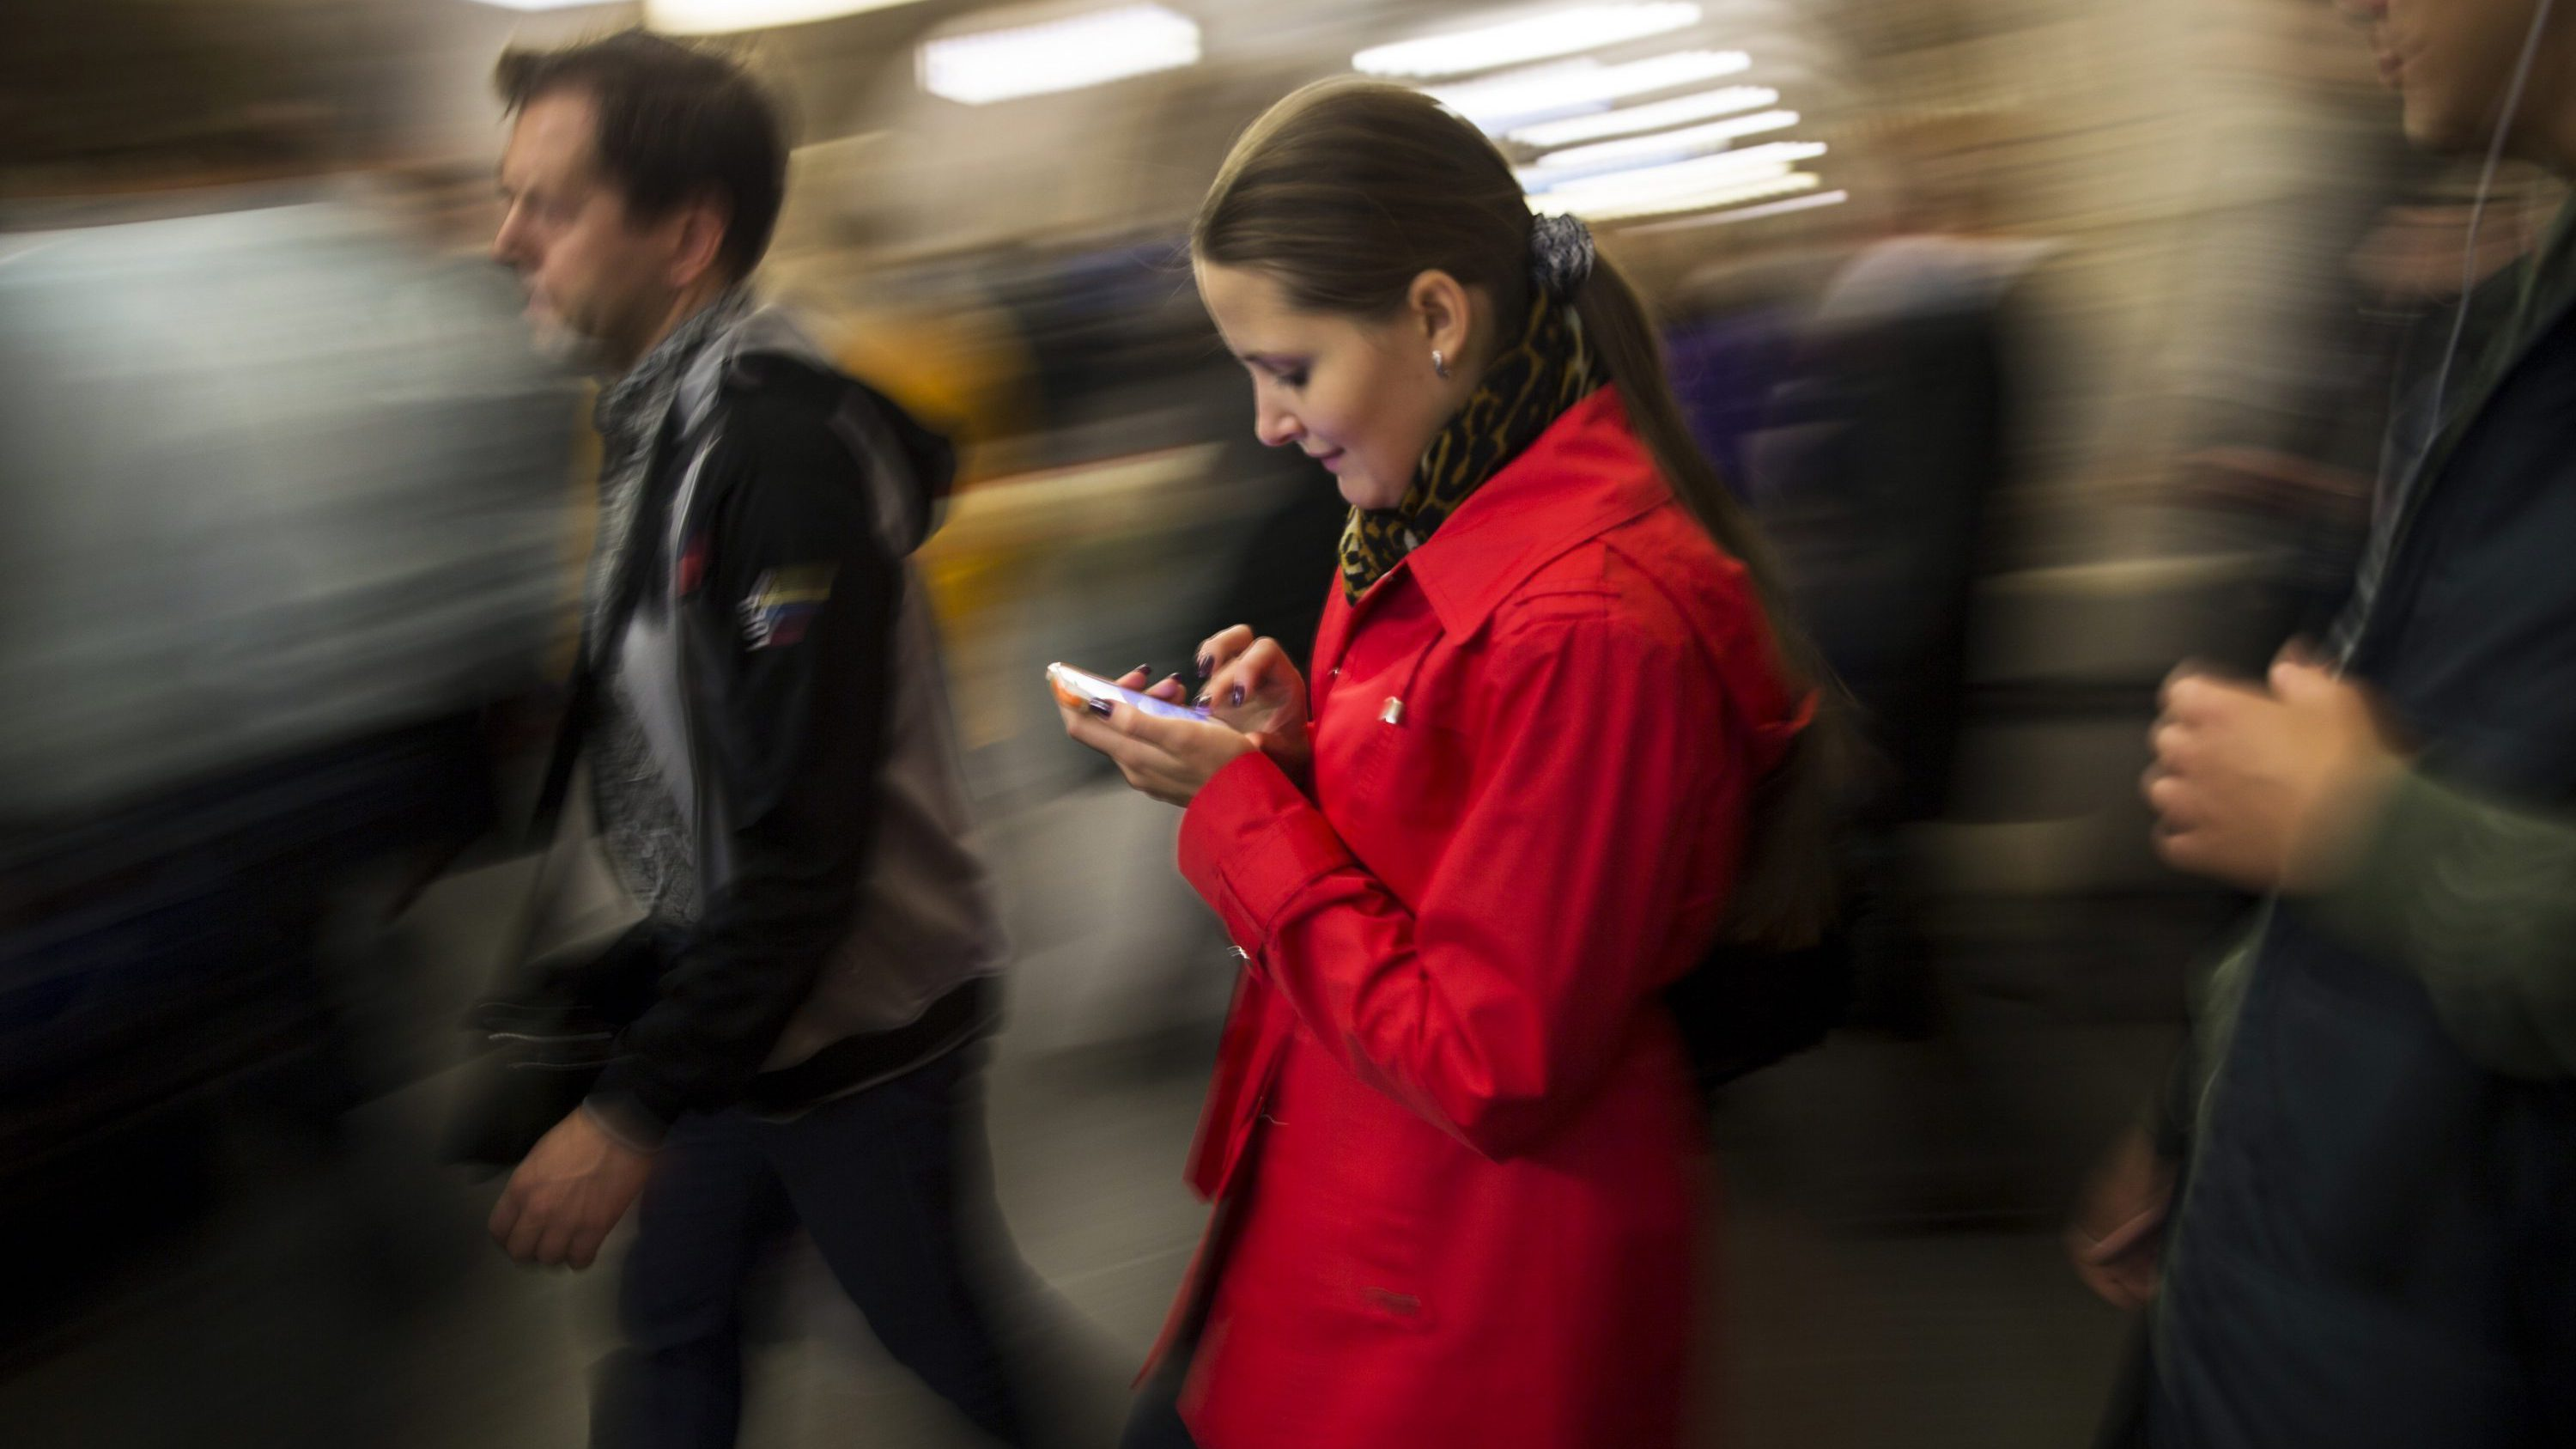 A woman surfs the Internet on her smartphone in Moscow's subway, Russia, Tuesday, Sept. 16, 2014.